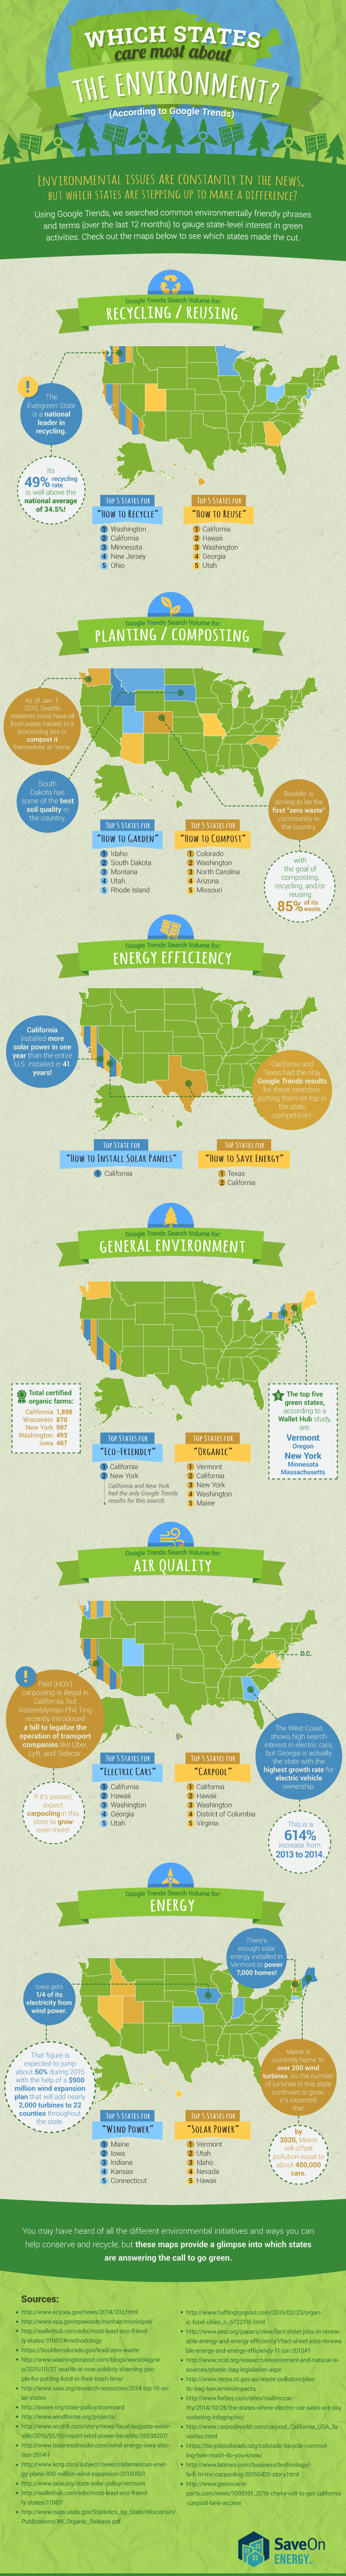 which-states-care-about-the-planet-infographic